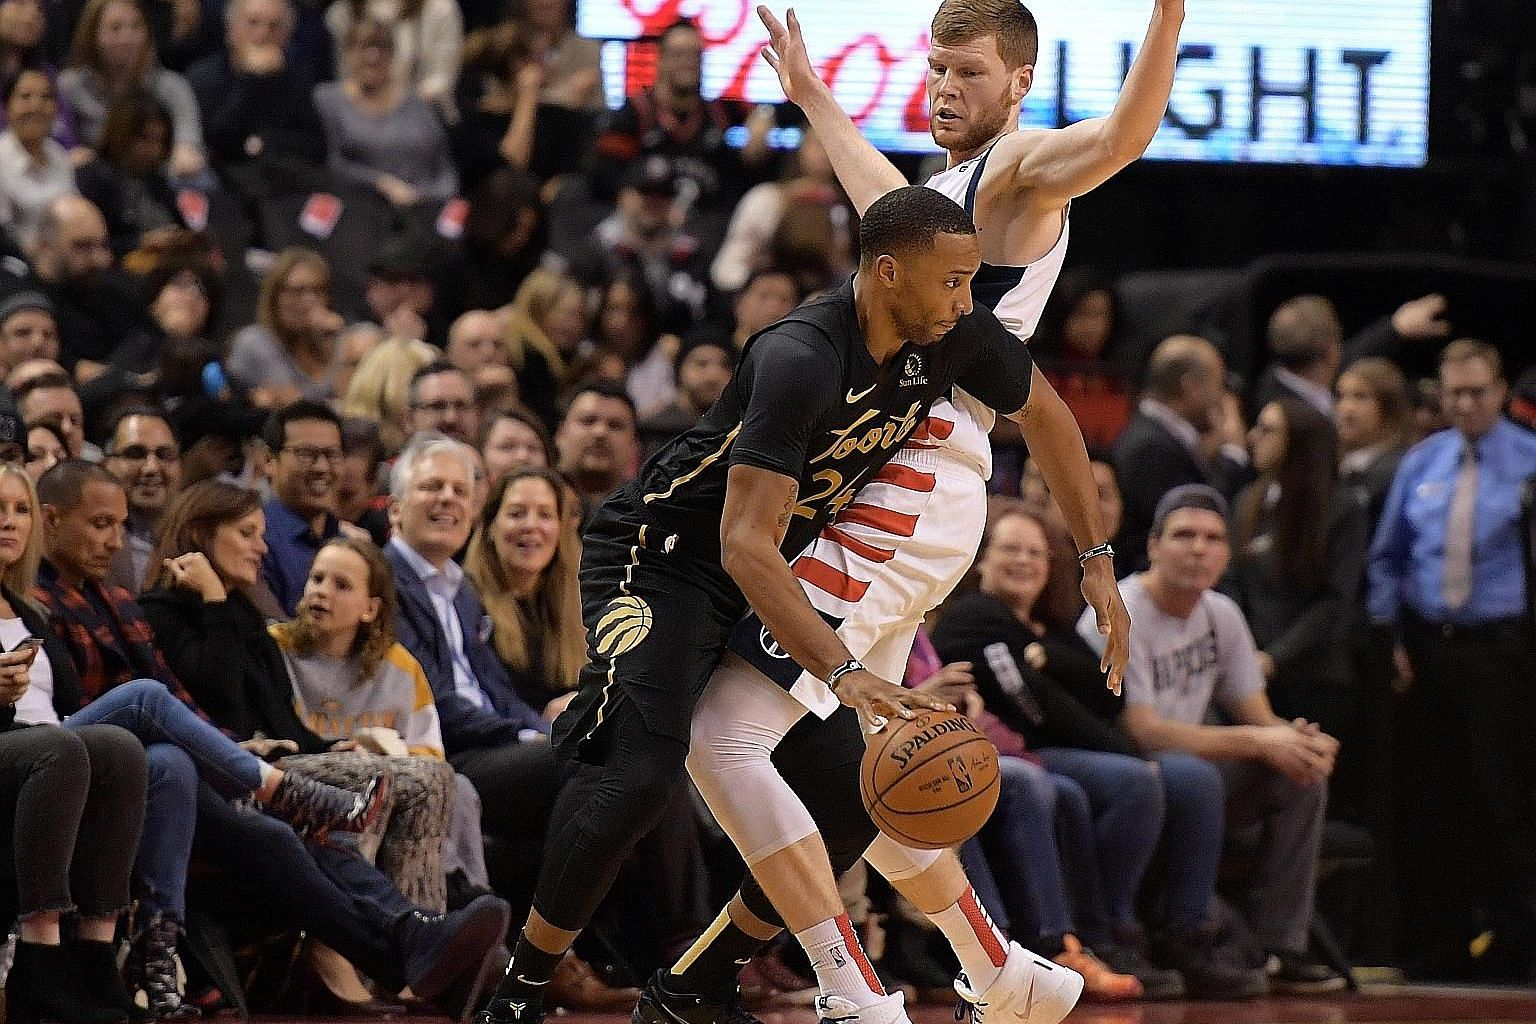 Toronto's Norman Powell trying to dribble past Washington Wizards' Davis Bertans during their NBA game on Friday. The guard led the Raptors with 28 points in the convincing 140-111 victory.